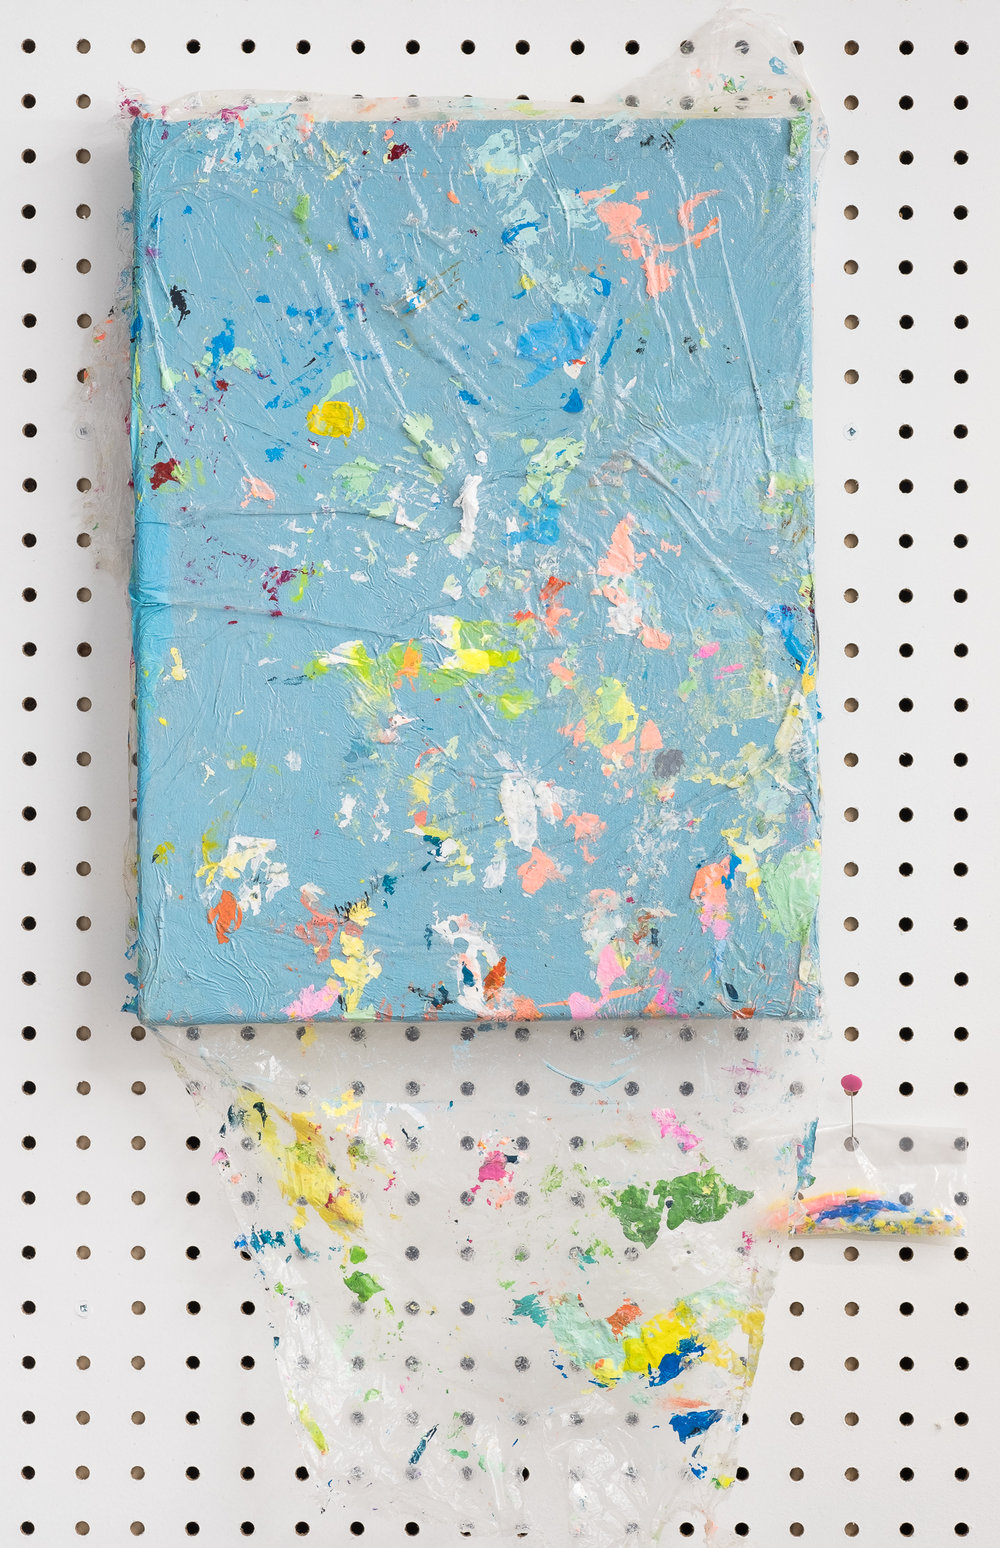 Jeanie Riddle. Protective Covering, 2018. 17 x 11 in. Acrylic on canvas, plastic. [Photo by Morgane Clément-Gagnon]